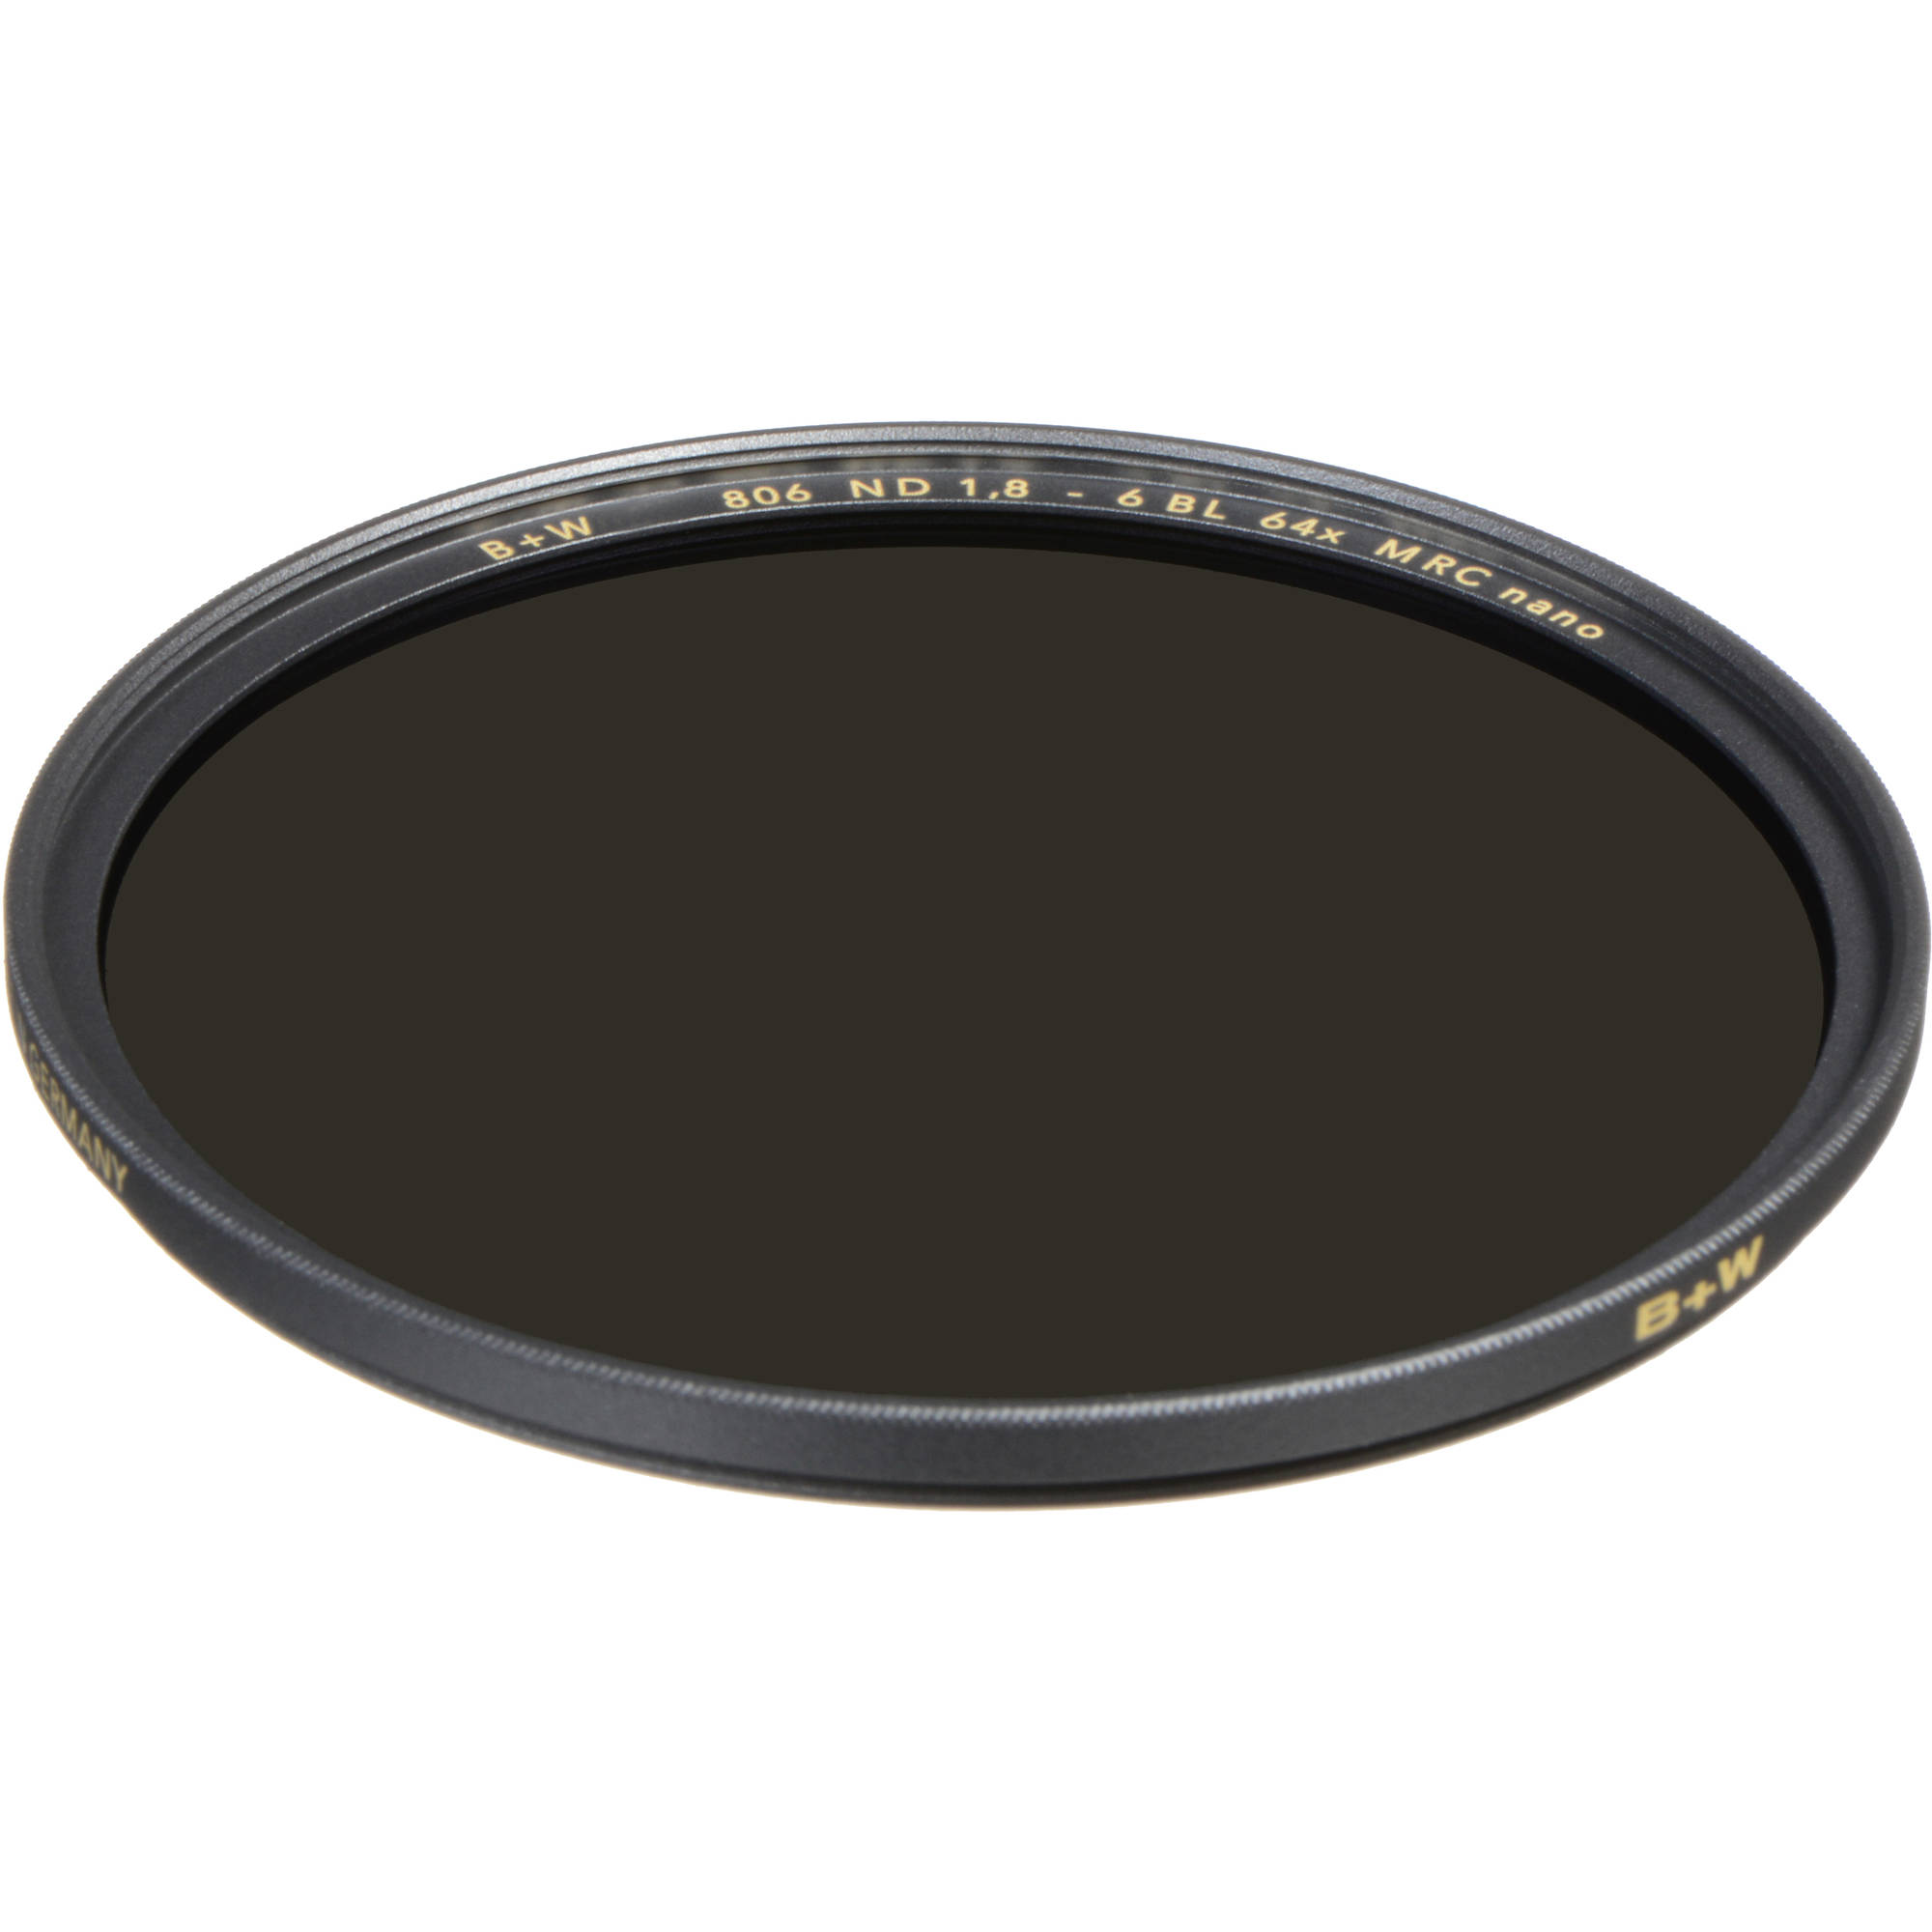 Details about  /NUPRO B-6TF-7 FILTER *NEW NO BOX*